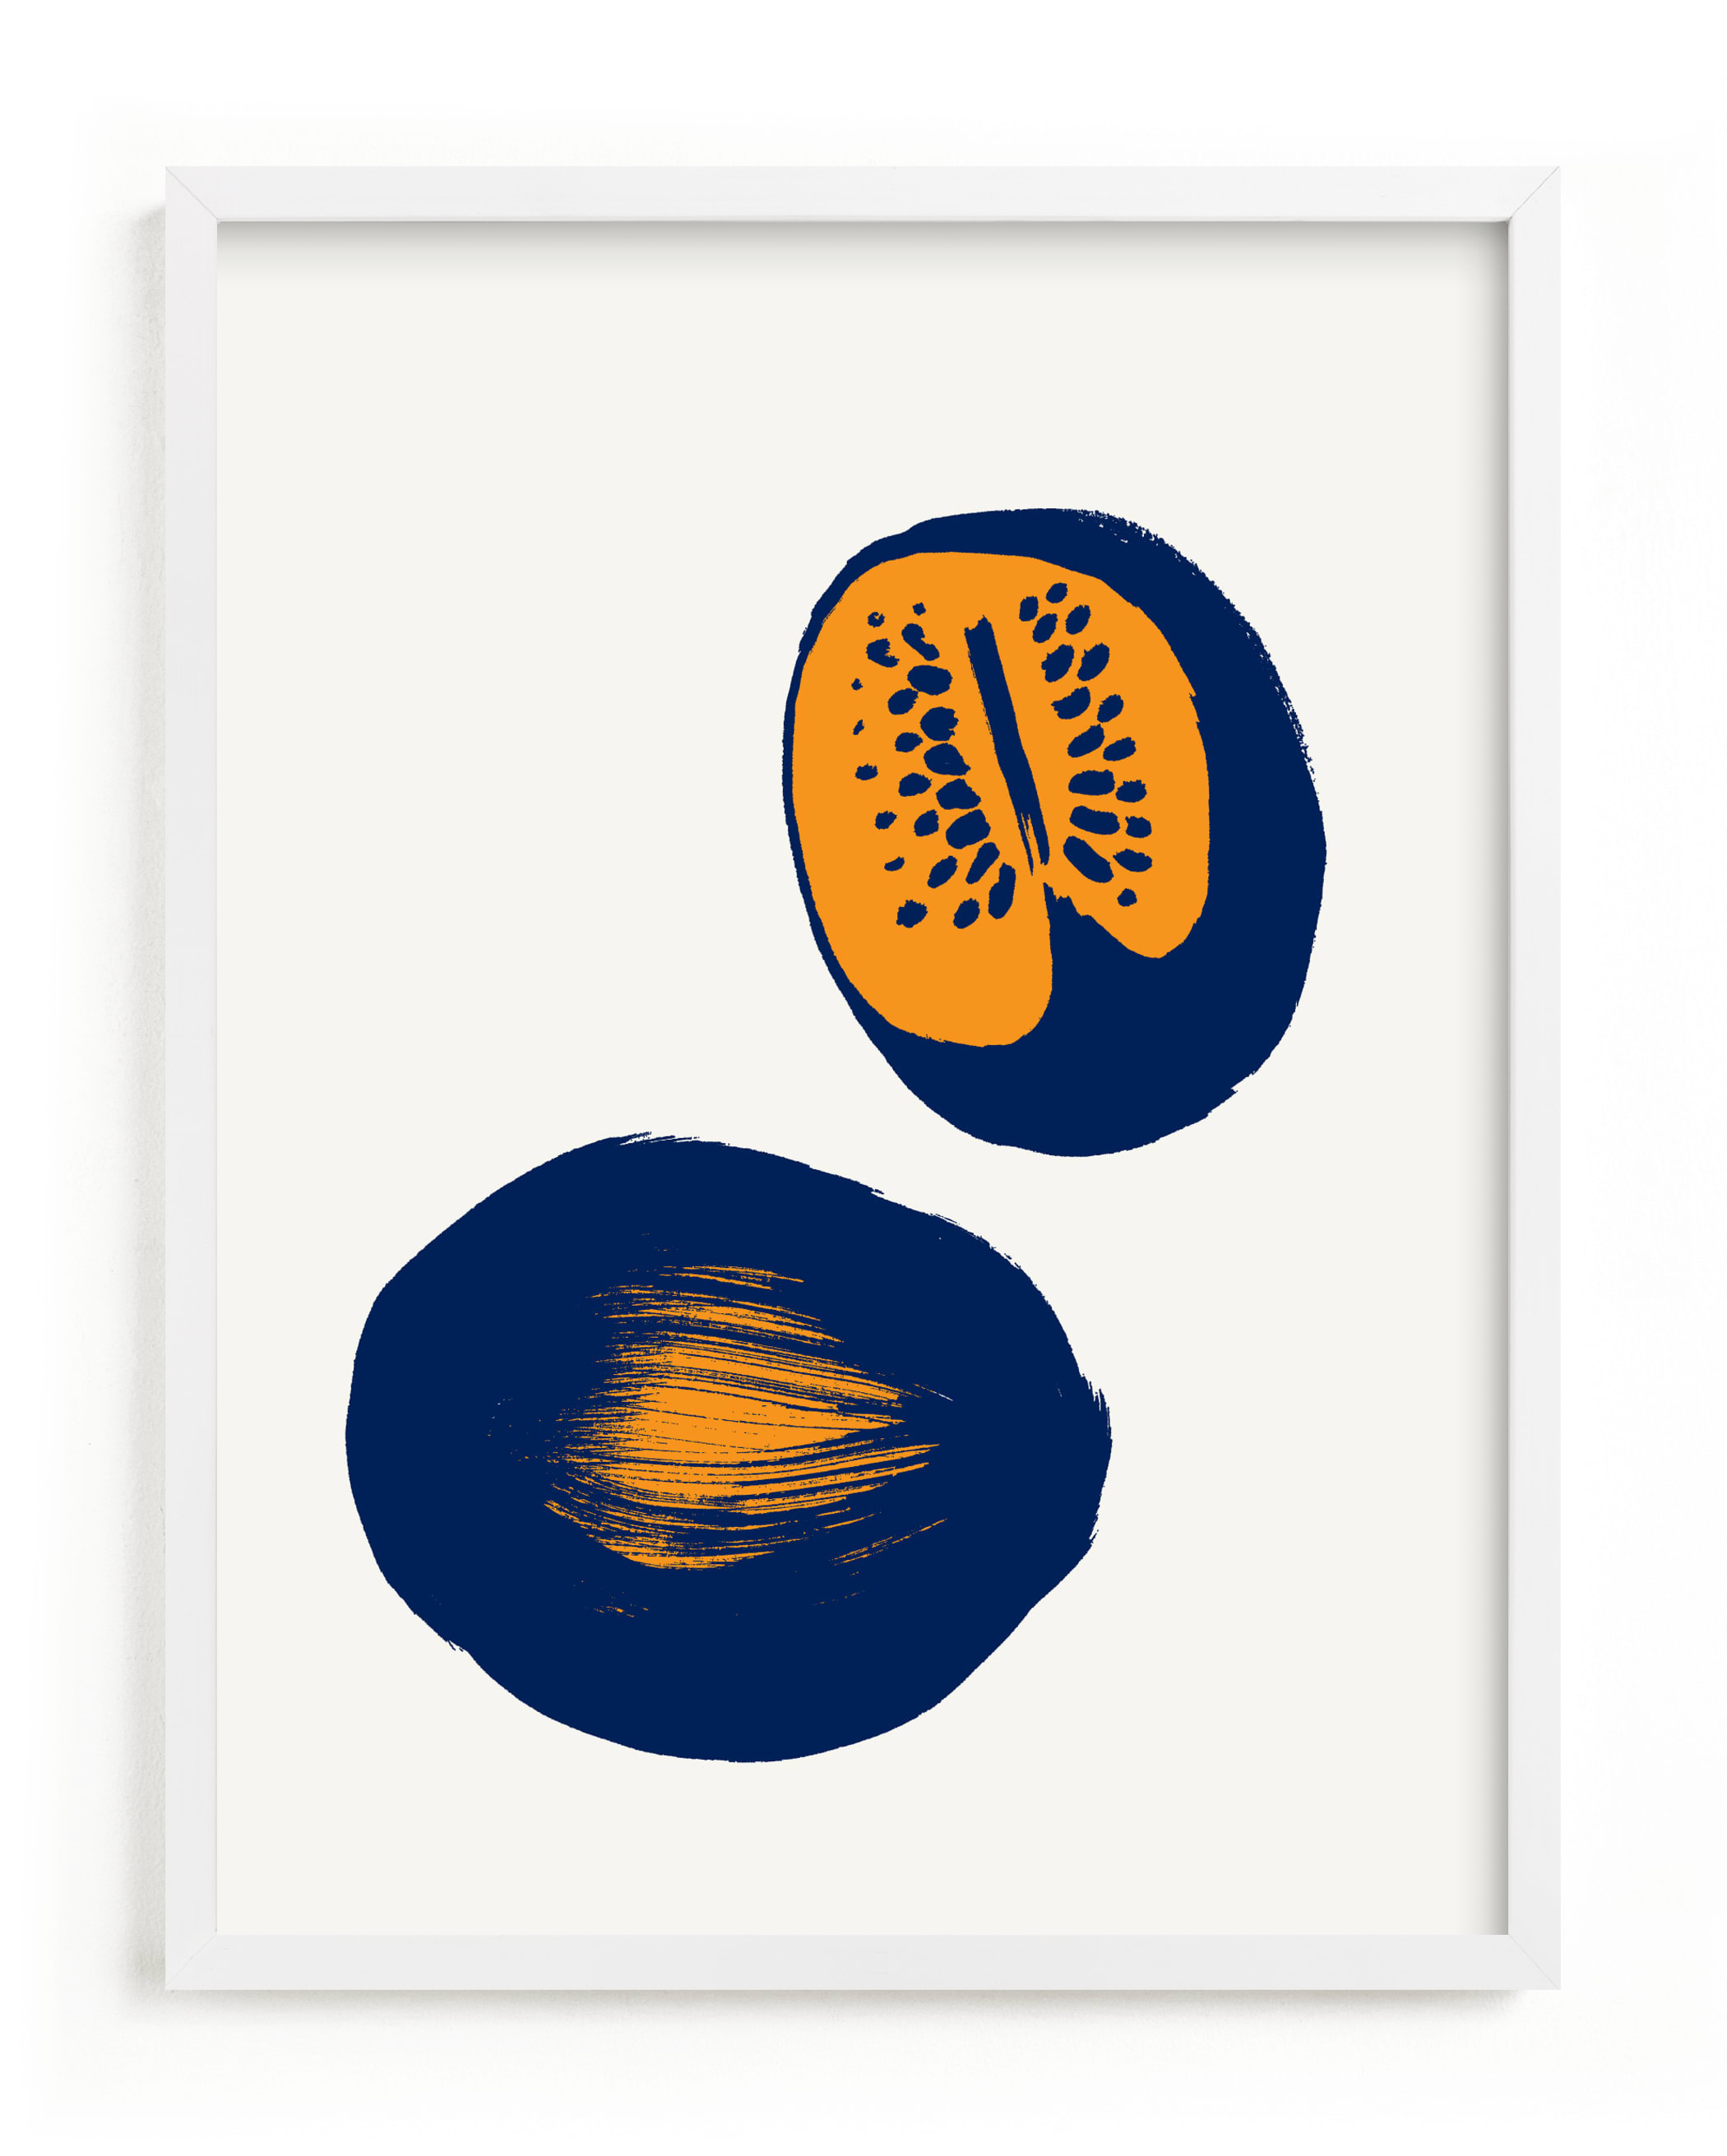 This is a blue art by Sonya Percival called Watermelons.